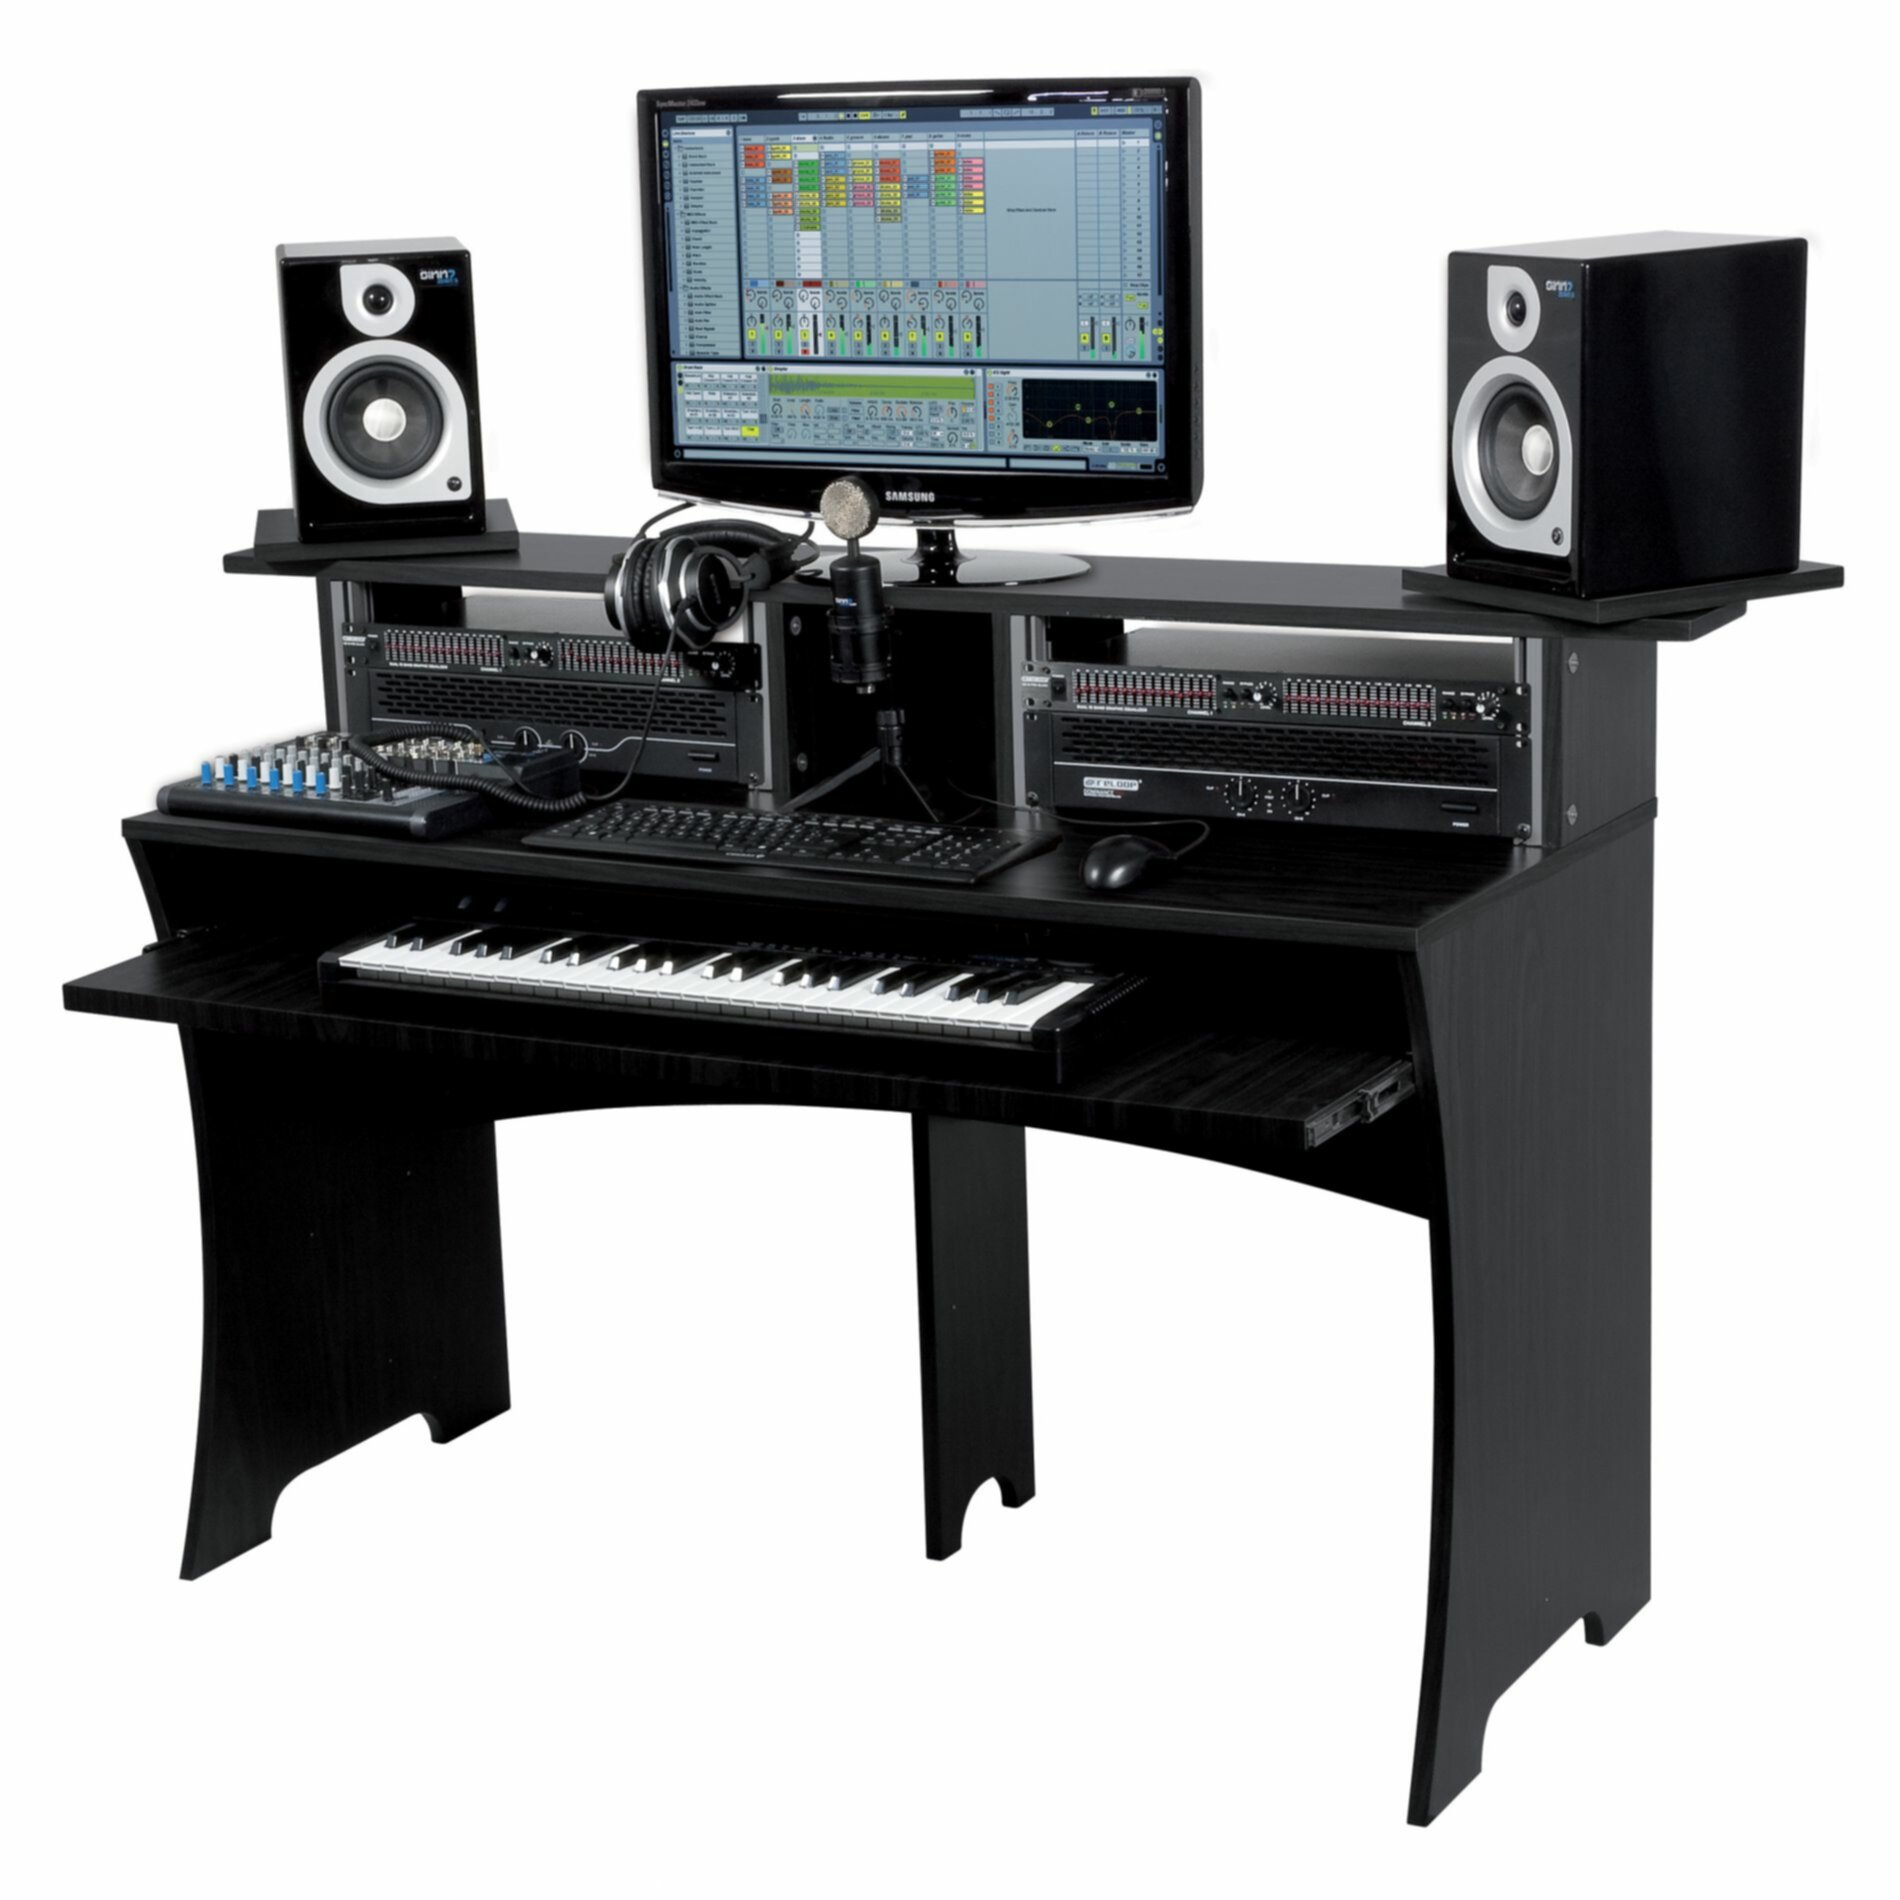 Astounding Glorious Workbench Black 359 00 Guitare Piano Andrewgaddart Wooden Chair Designs For Living Room Andrewgaddartcom